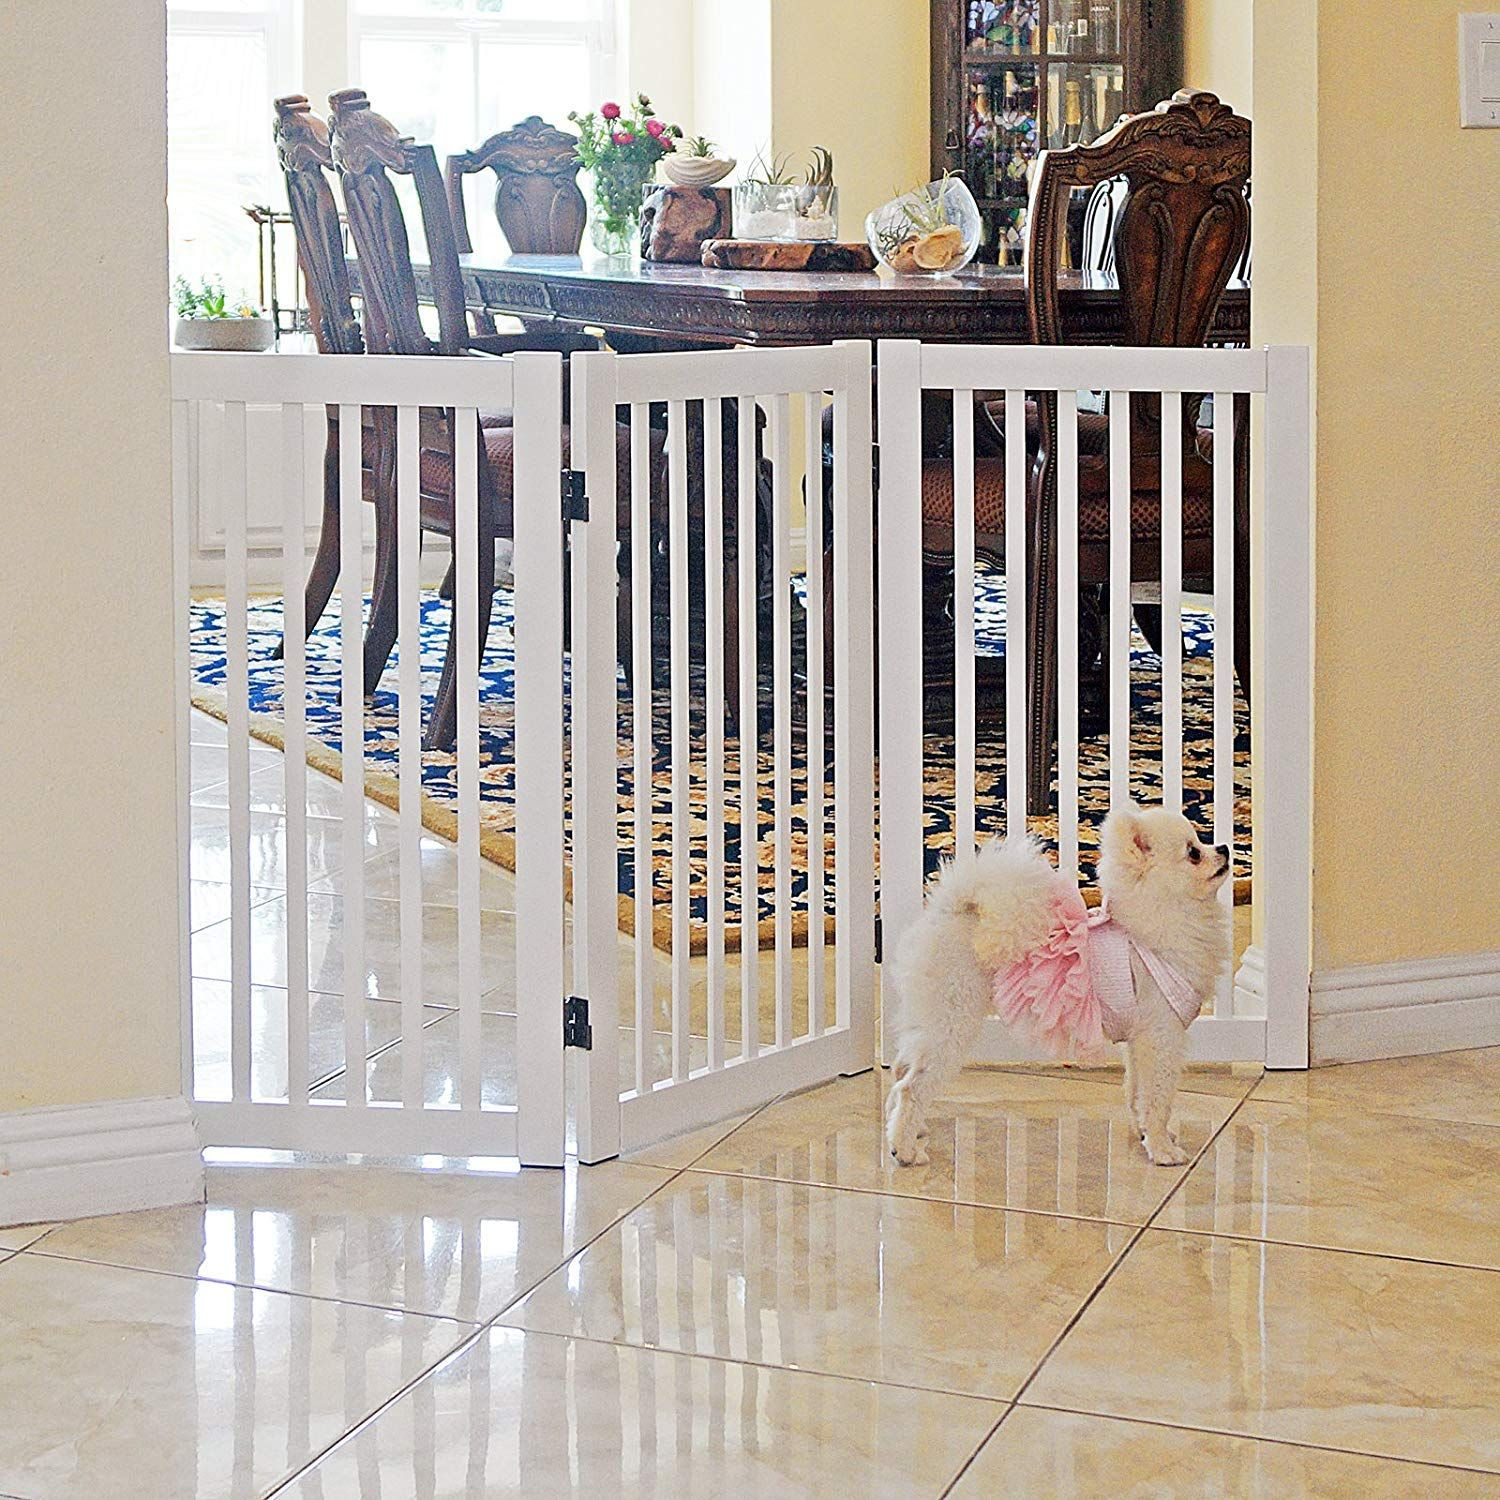 Welland Freestanding Wood Pet Gate White 54 Inch Width 30 Inch Height No Support Feet Read Extra At The Photo Link This In 2020 Dog Gate Pet Gate Baby Gates